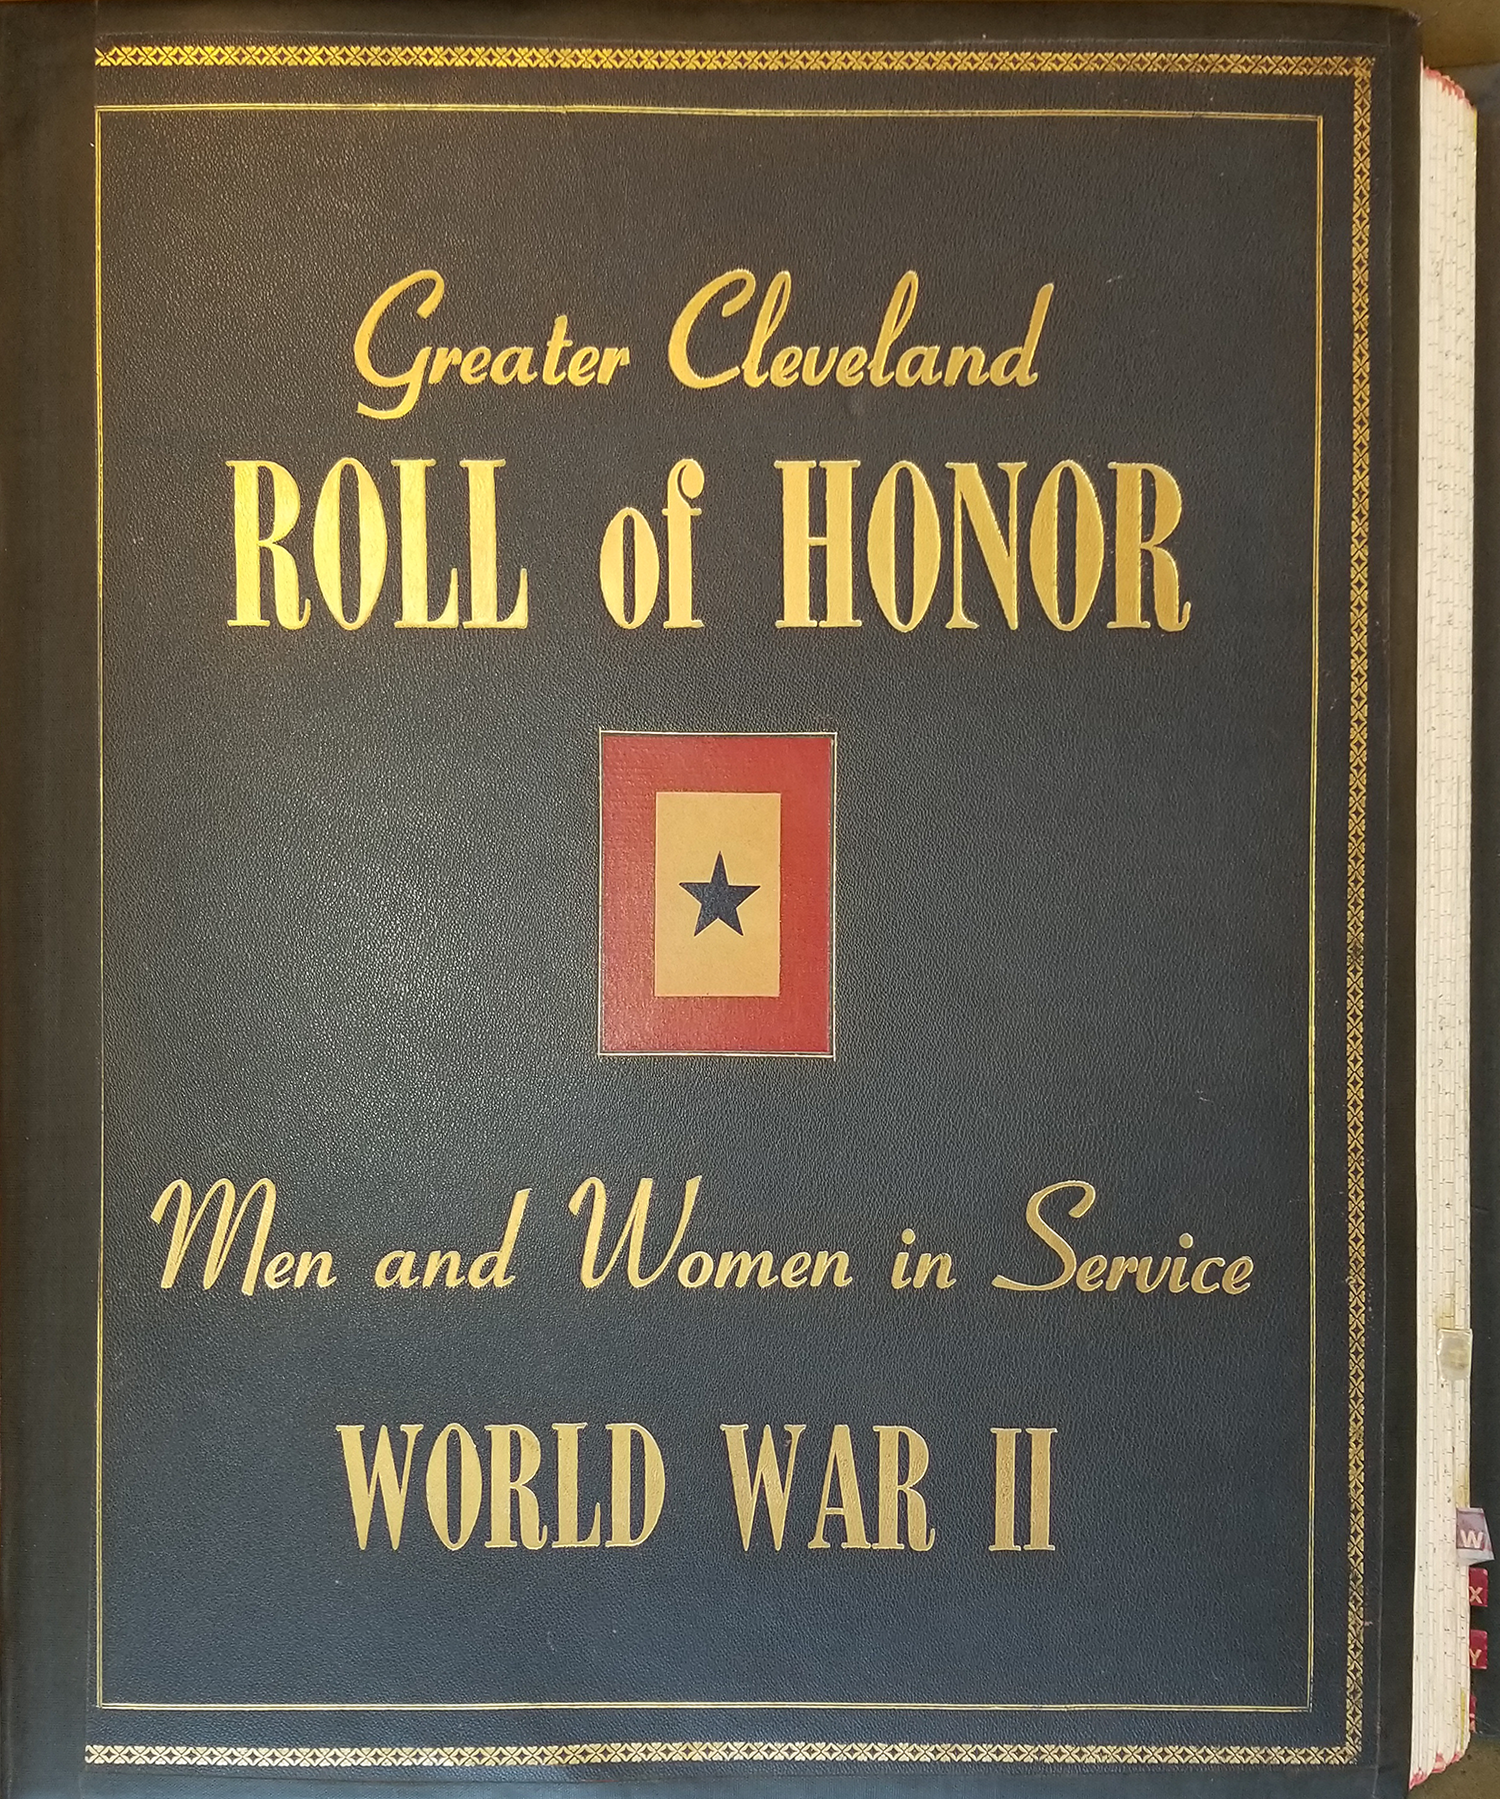 Roll of Honor (book jacket with gold letters on black leather-like fabric).